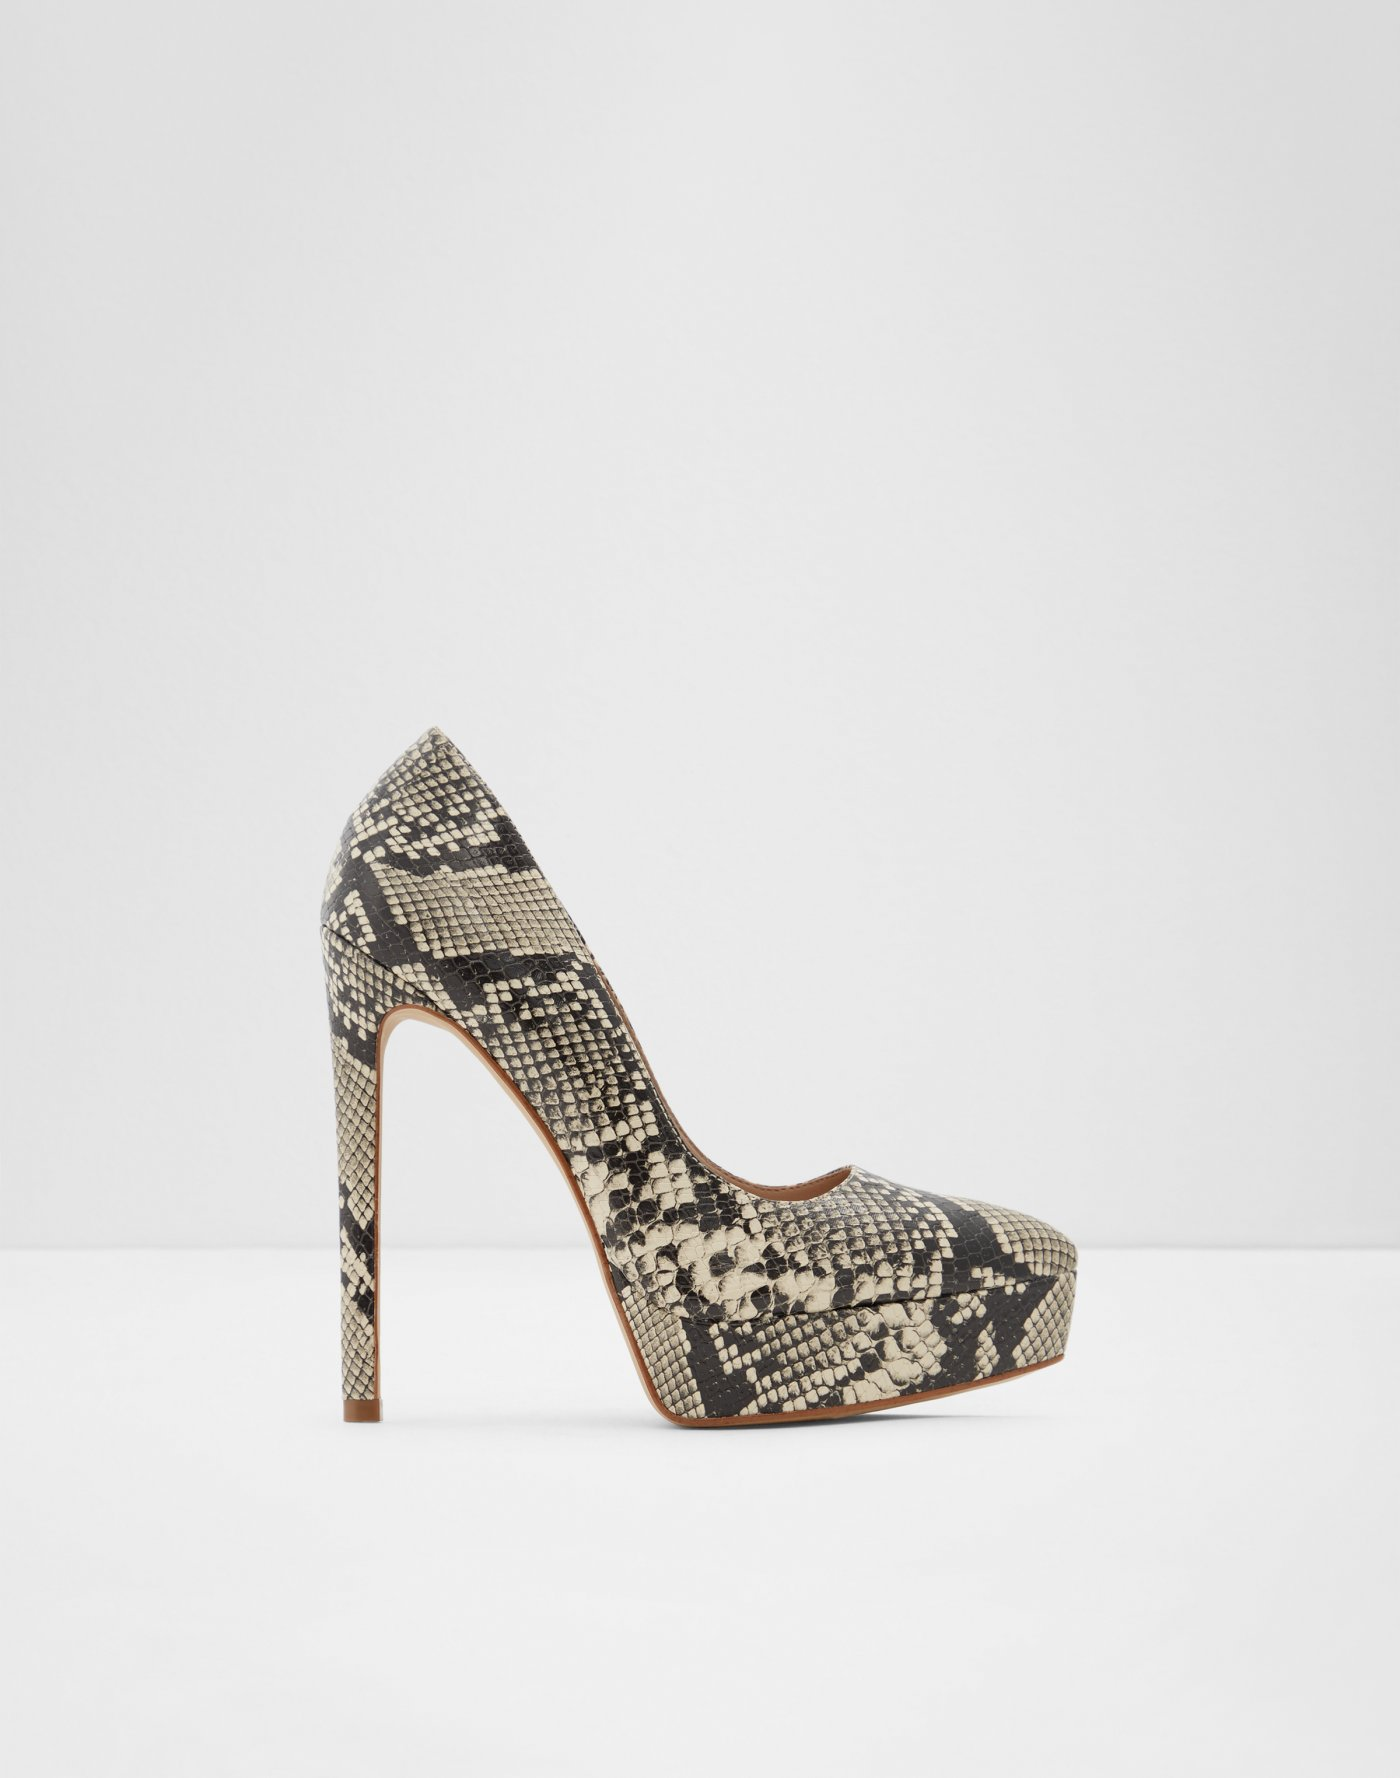 Women's Heels | Black, Red, Nude, Silver Heels | ALDO US